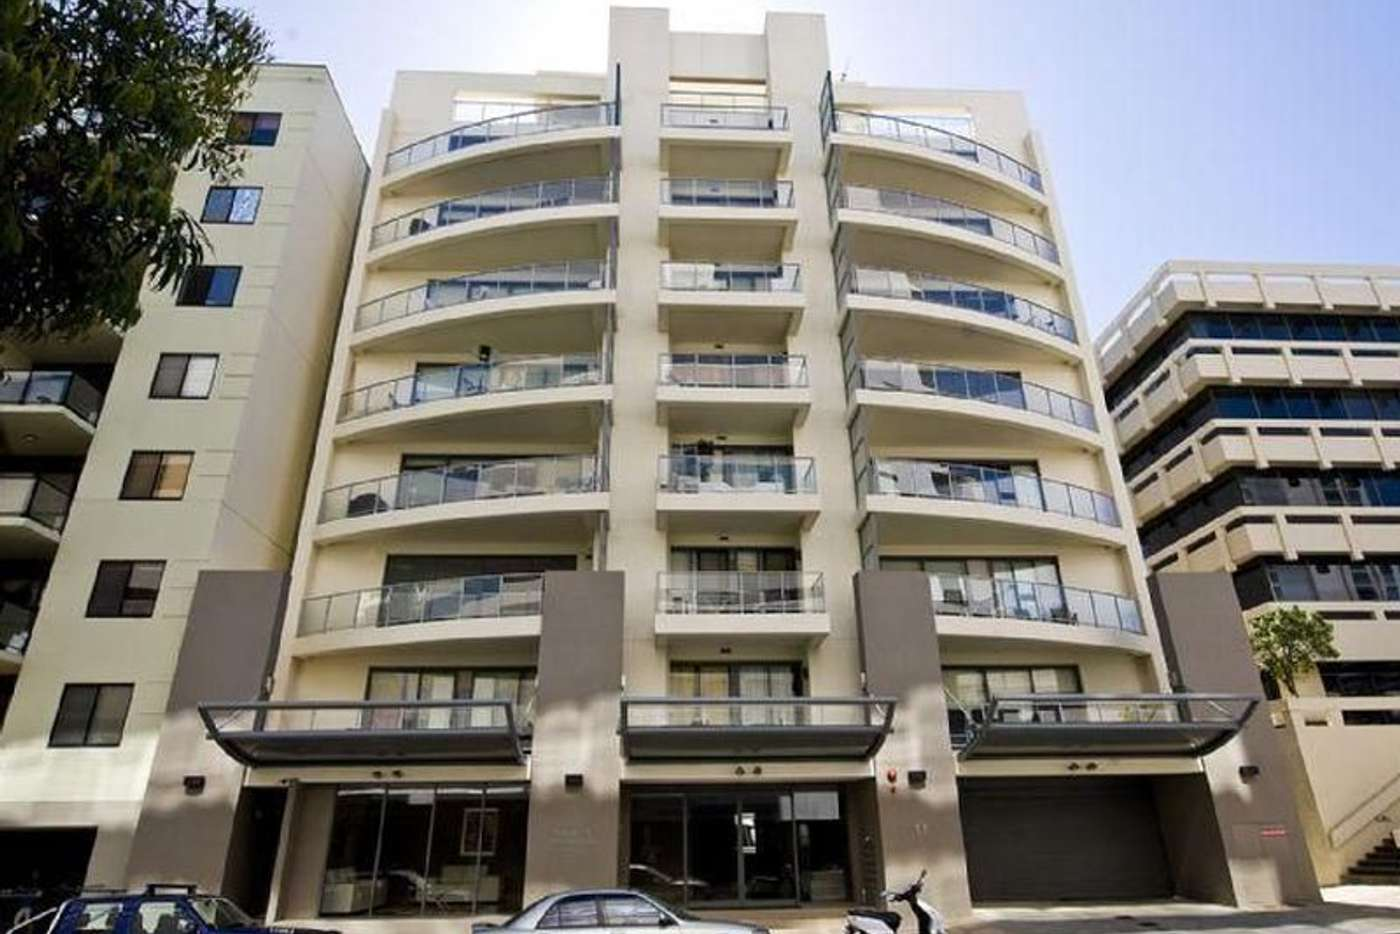 Main view of Homely apartment listing, 11 Bennett Street, Perth WA 6000